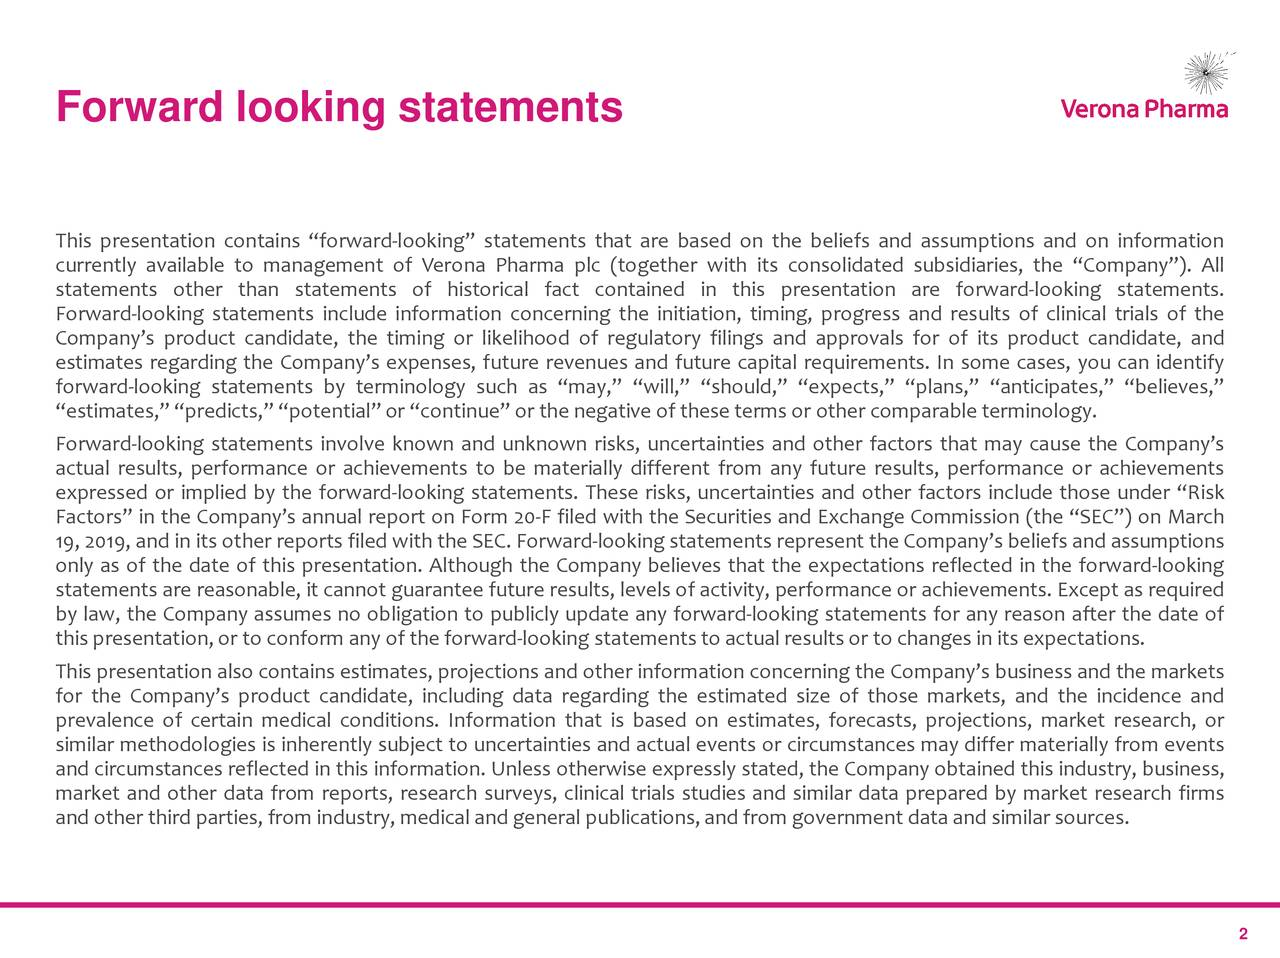 "This presentation contains ""forward-looking"" statements that are based on the beliefs and assumptions and on information currently available to management of Verona Pharma plc (together with its consolidated subsidiaries, the ""Company""). All statements other than statements of historical fact contained in this presentation are forward-looking statements. Forward-looking statements include information concerning the initiation, timing, progress and results of clinical trials of the Company's product candidate, the timing or likelihood of regulatory filings and approvals for of its product candidate, and estimates regarding the Company's expenses, future revenues and future capital requirements. In some cases, you can identify forward-looking statements by terminology such as ""may,"" ""will,"" ""should,"" ""expects,"" ""plans,"" ""anticipates,"" ""believes,"" ""estimates,""""predicts,"" ""potential""or ""continue"" or the negative of these terms or other comparable terminology. Forward-looking statements involve known and unknown risks, uncertainties and other factors that may cause the Company's actual results, performance or achievements to be materially different from any future results, performance or achievements expressed or implied by the forward-looking statements. These risks, uncertainties and other factors include those under ""Risk Factors"" in the Company's annual report on Form 20-F filed with the Securities and Exchange Commission (the ""SEC"") on March 19, 2019, and in its other reports filed with the SEC. Forward-looking statements represent the Company's beliefs and assumptions only as of the date of this presentation. Although the Company believes that the expectations reflected in the forward-looking statements are reasonable, it cannot guarantee future results, levels of activity, performance or achievements. Except as required by law, the Company assumes no obligation to publicly update any forward-looking statements for any reason after the date of this presentation,or to conform any of the forward-looking statements to actual results or to changes in its expectations. This presentation also contains estimates, projections and other information concerning the Company's business and the markets for the Company's product candidate, including data regarding the estimated size of those markets, and the incidence and prevalence of certain medical conditions. Information that is based on estimates, forecasts, projections, market research, or similar methodologies is inherently subject to uncertainties and actual events or circumstances may differ materially from events and circumstances reflected in this information. Unless otherwise expressly stated, the Company obtained this industry, business, market and other data from reports, research surveys, clinical trials studies and similar data prepared by market research firms and other third parties, from industry, medical and general publications,and from government data and similar sources. 2"